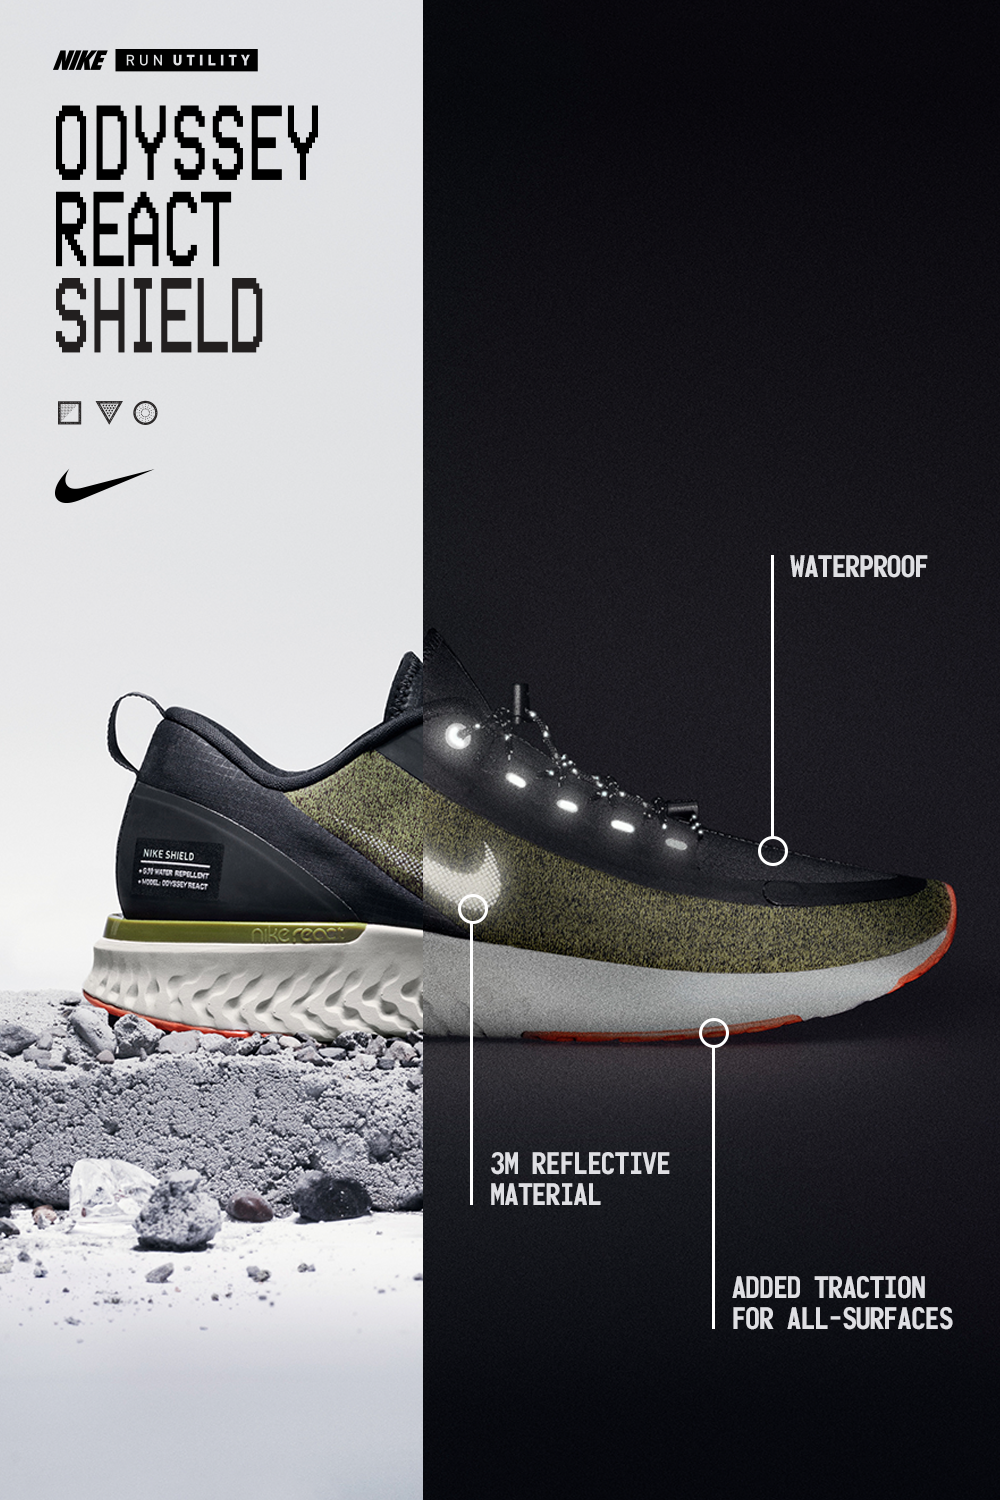 Inclement Weather Not A Problem With A Waterproof Upper And Added Traction On Any Surface The Nike Odyssey React Shoe Poster Nike Waterproof Shoes Shoes Ads